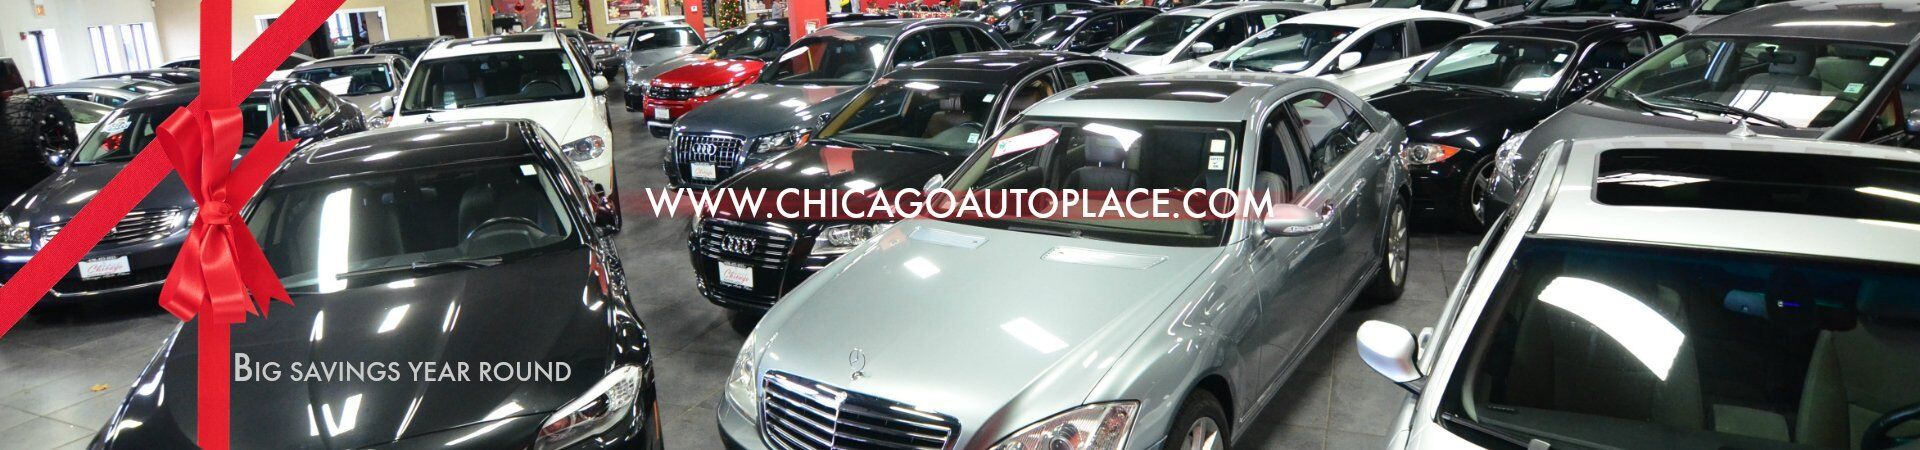 Chicago Auto Place Showroom